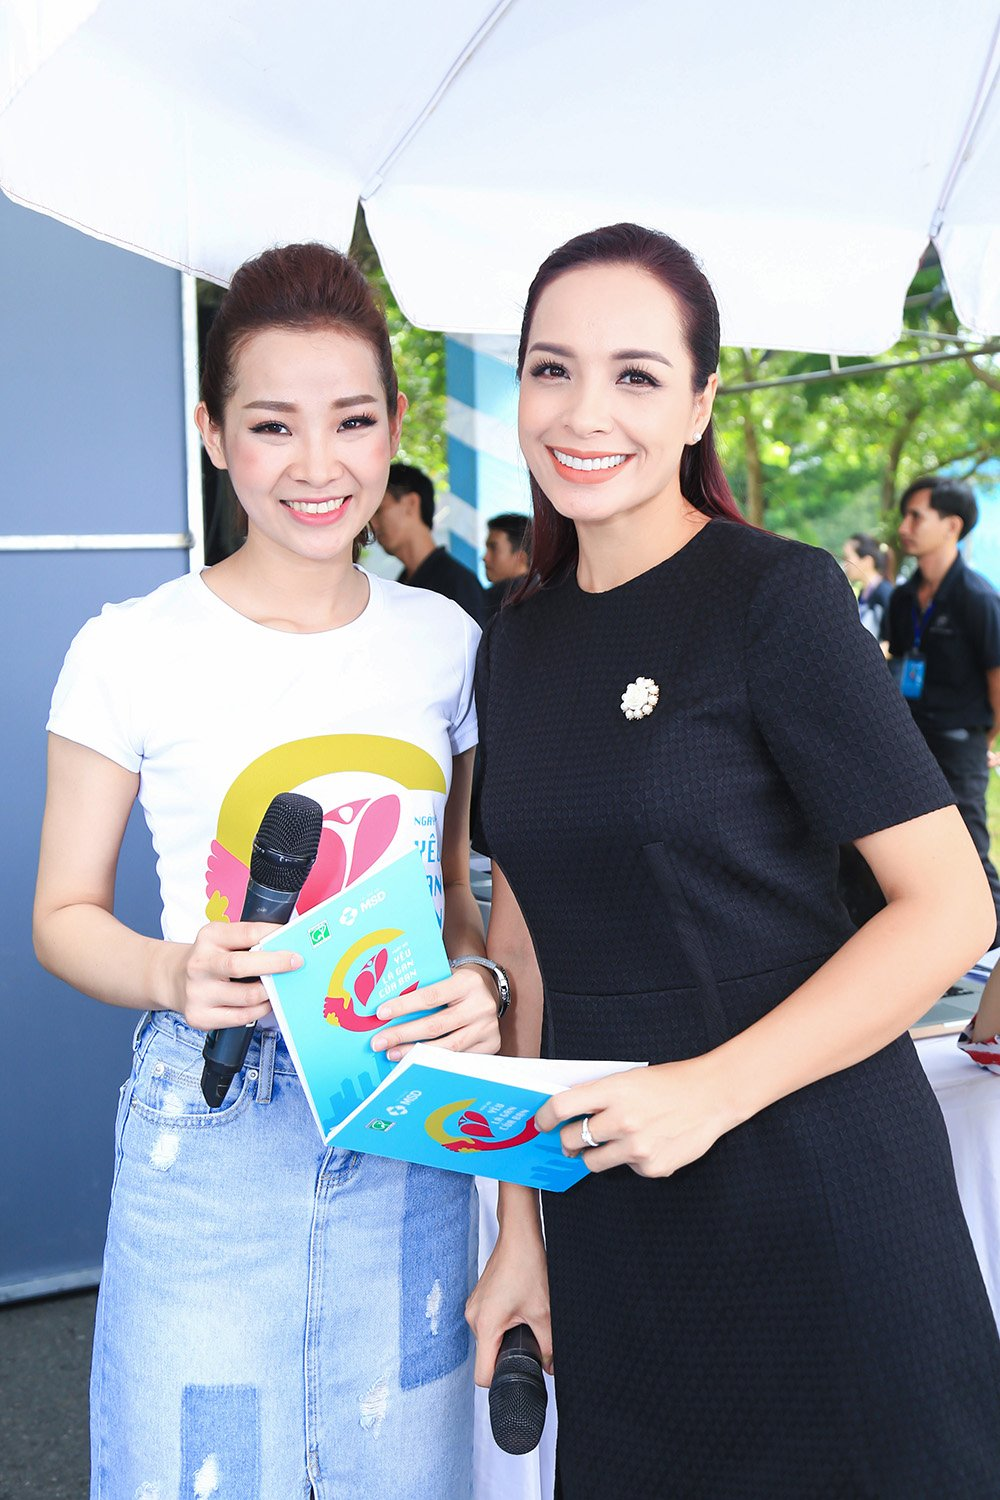 O tuoi 40, Thuy Hanh van tu tin do sac voi nu MC 9x hinh anh 4